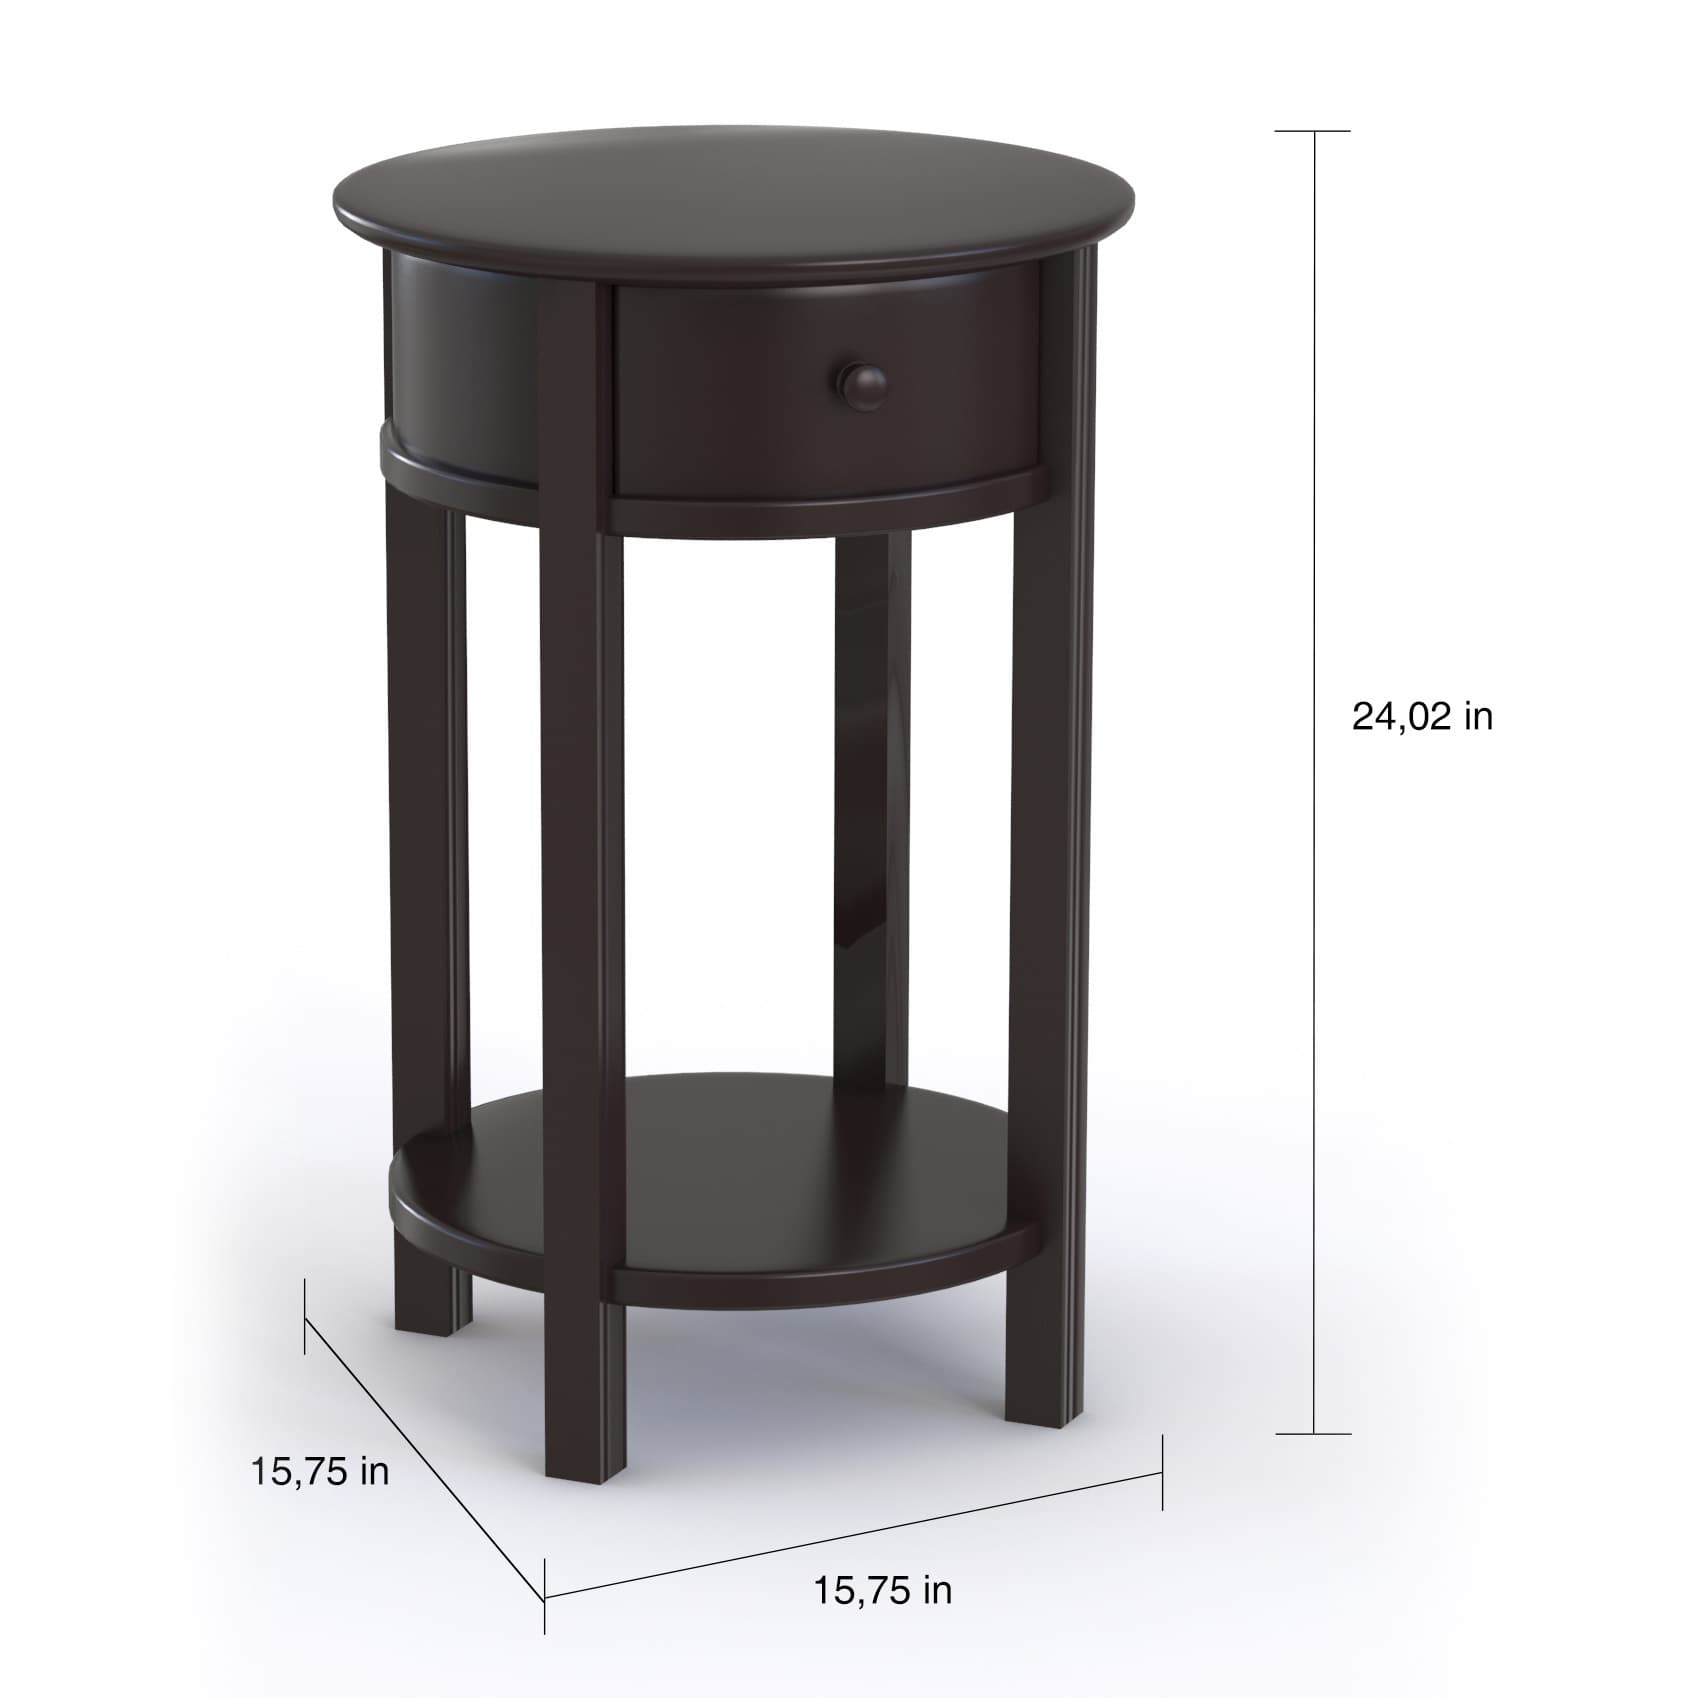 copper grove rearguard round espresso end table free shipping ameriwood home tipton today replacement top for outdoor patio umbrella italian office furniture decorating ideas